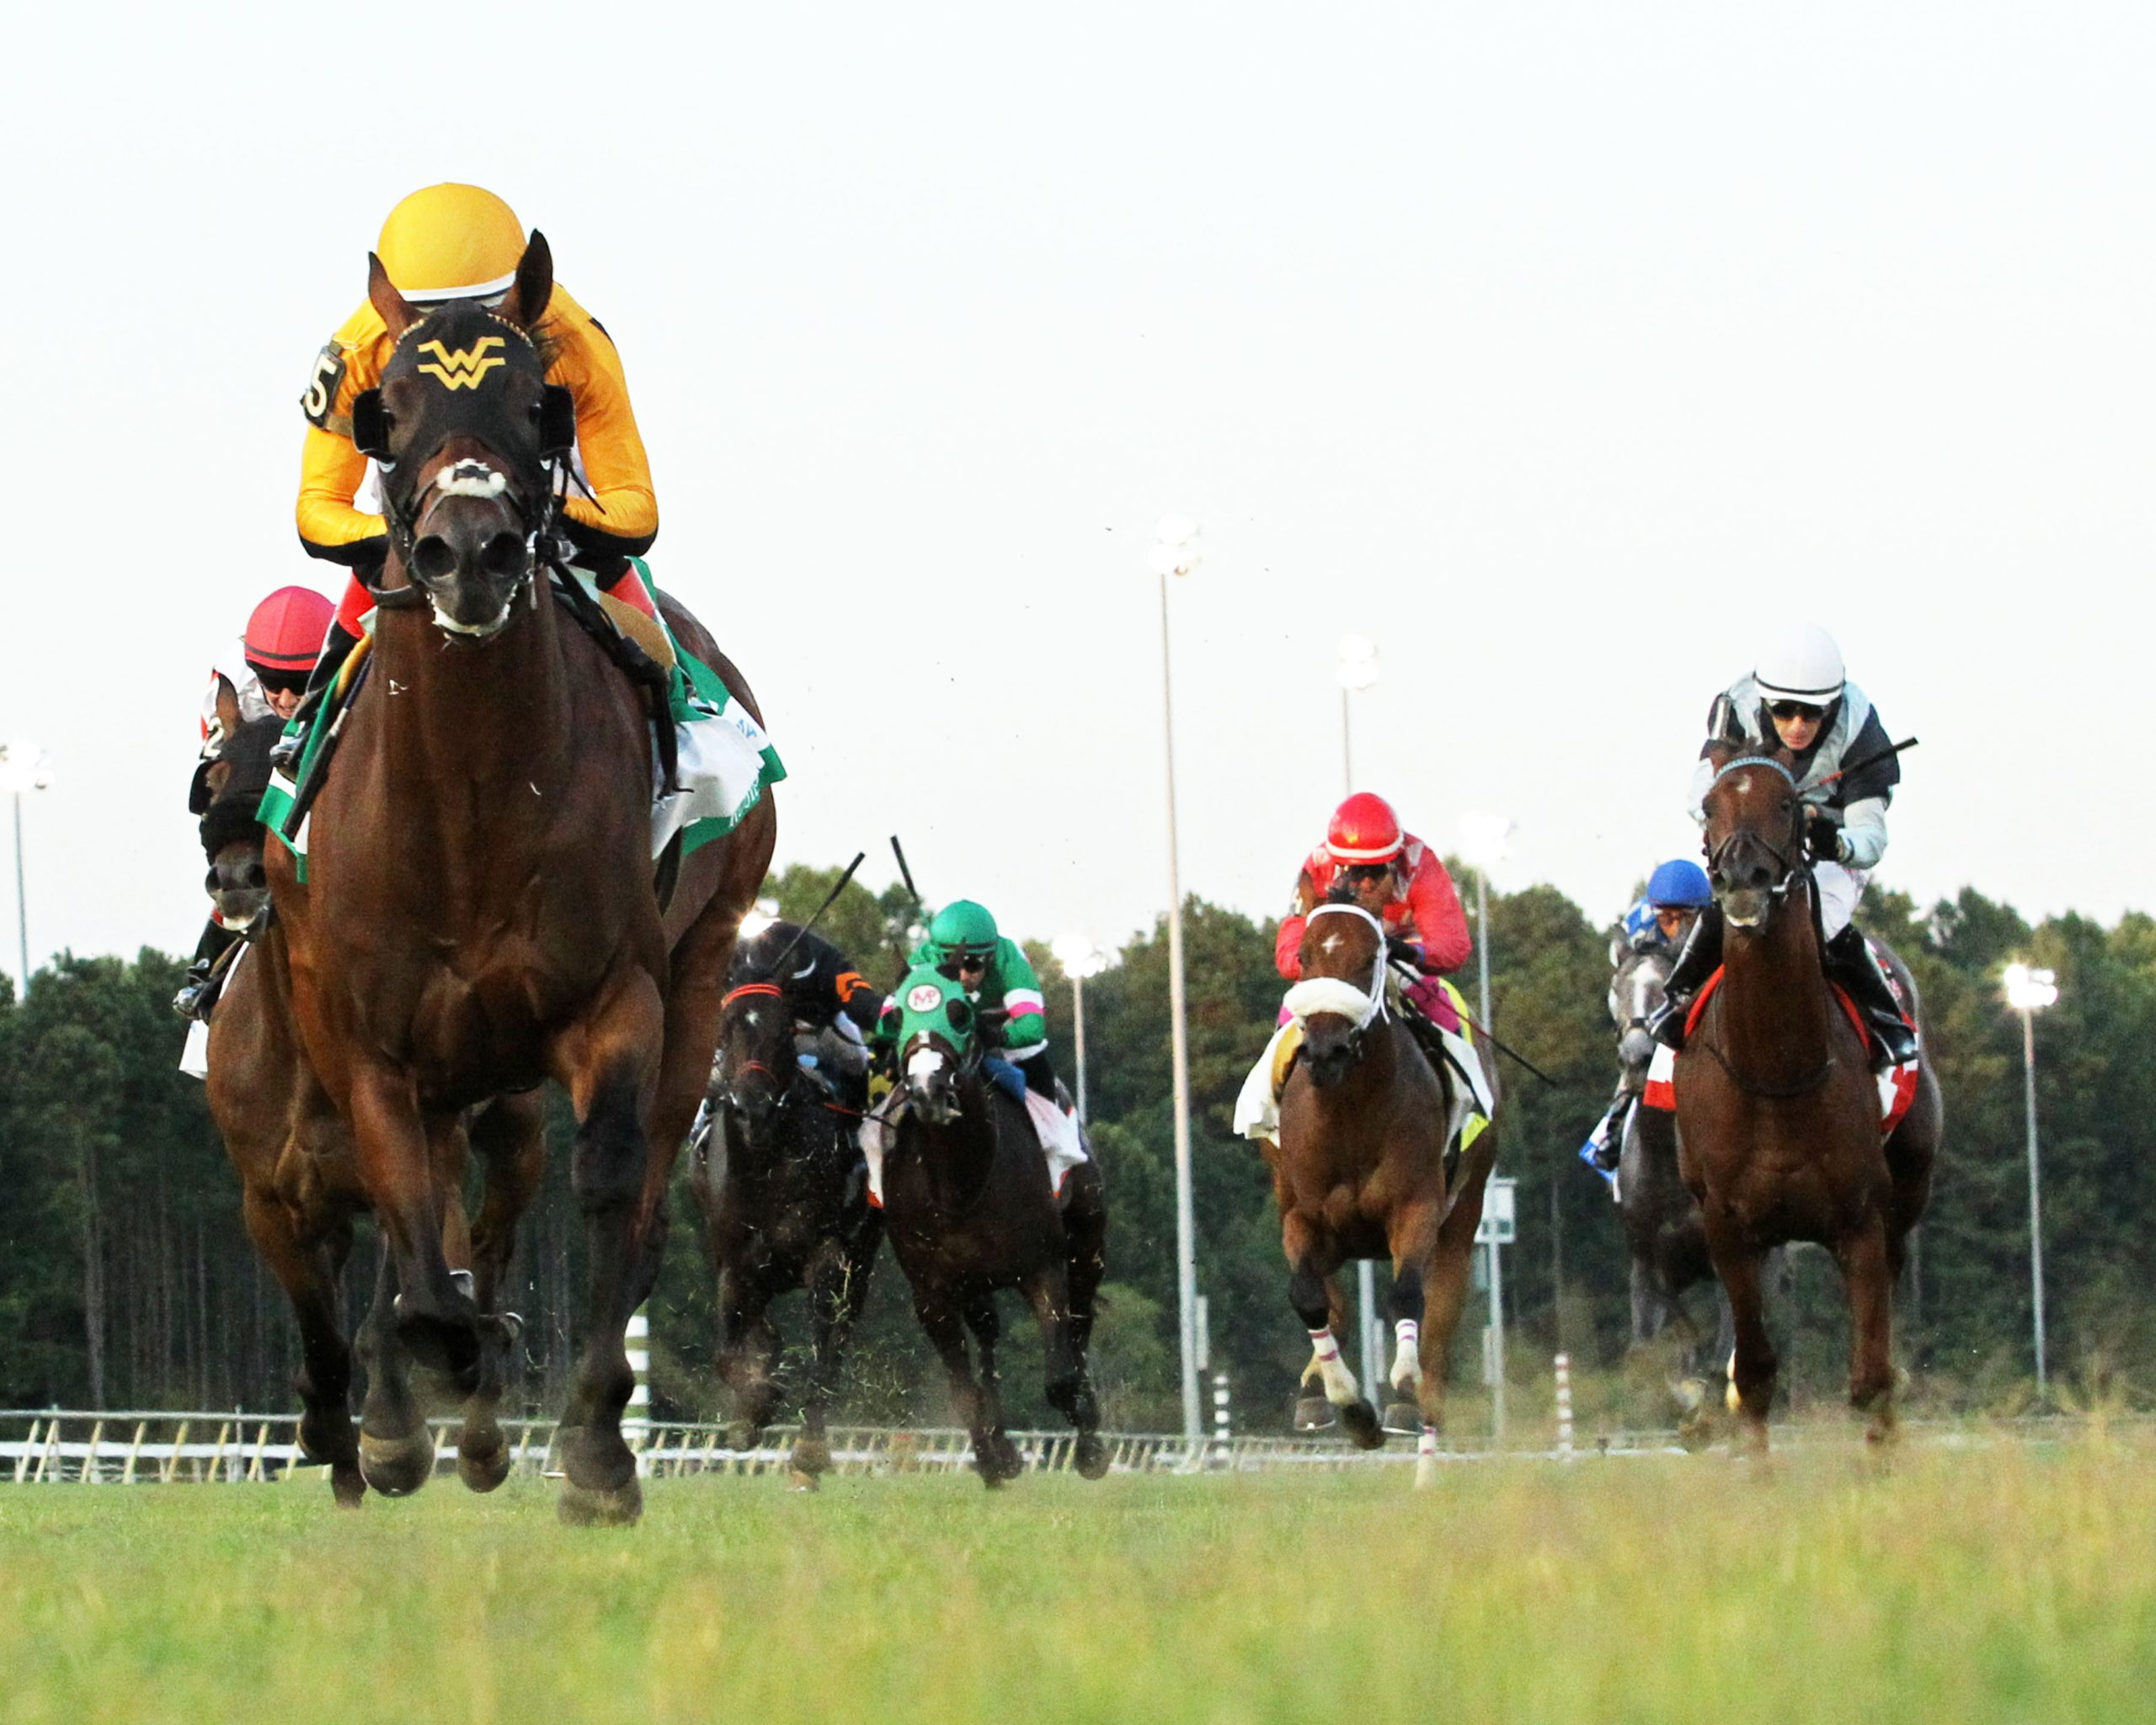 Live Racing at Colonial Downs in New Kent